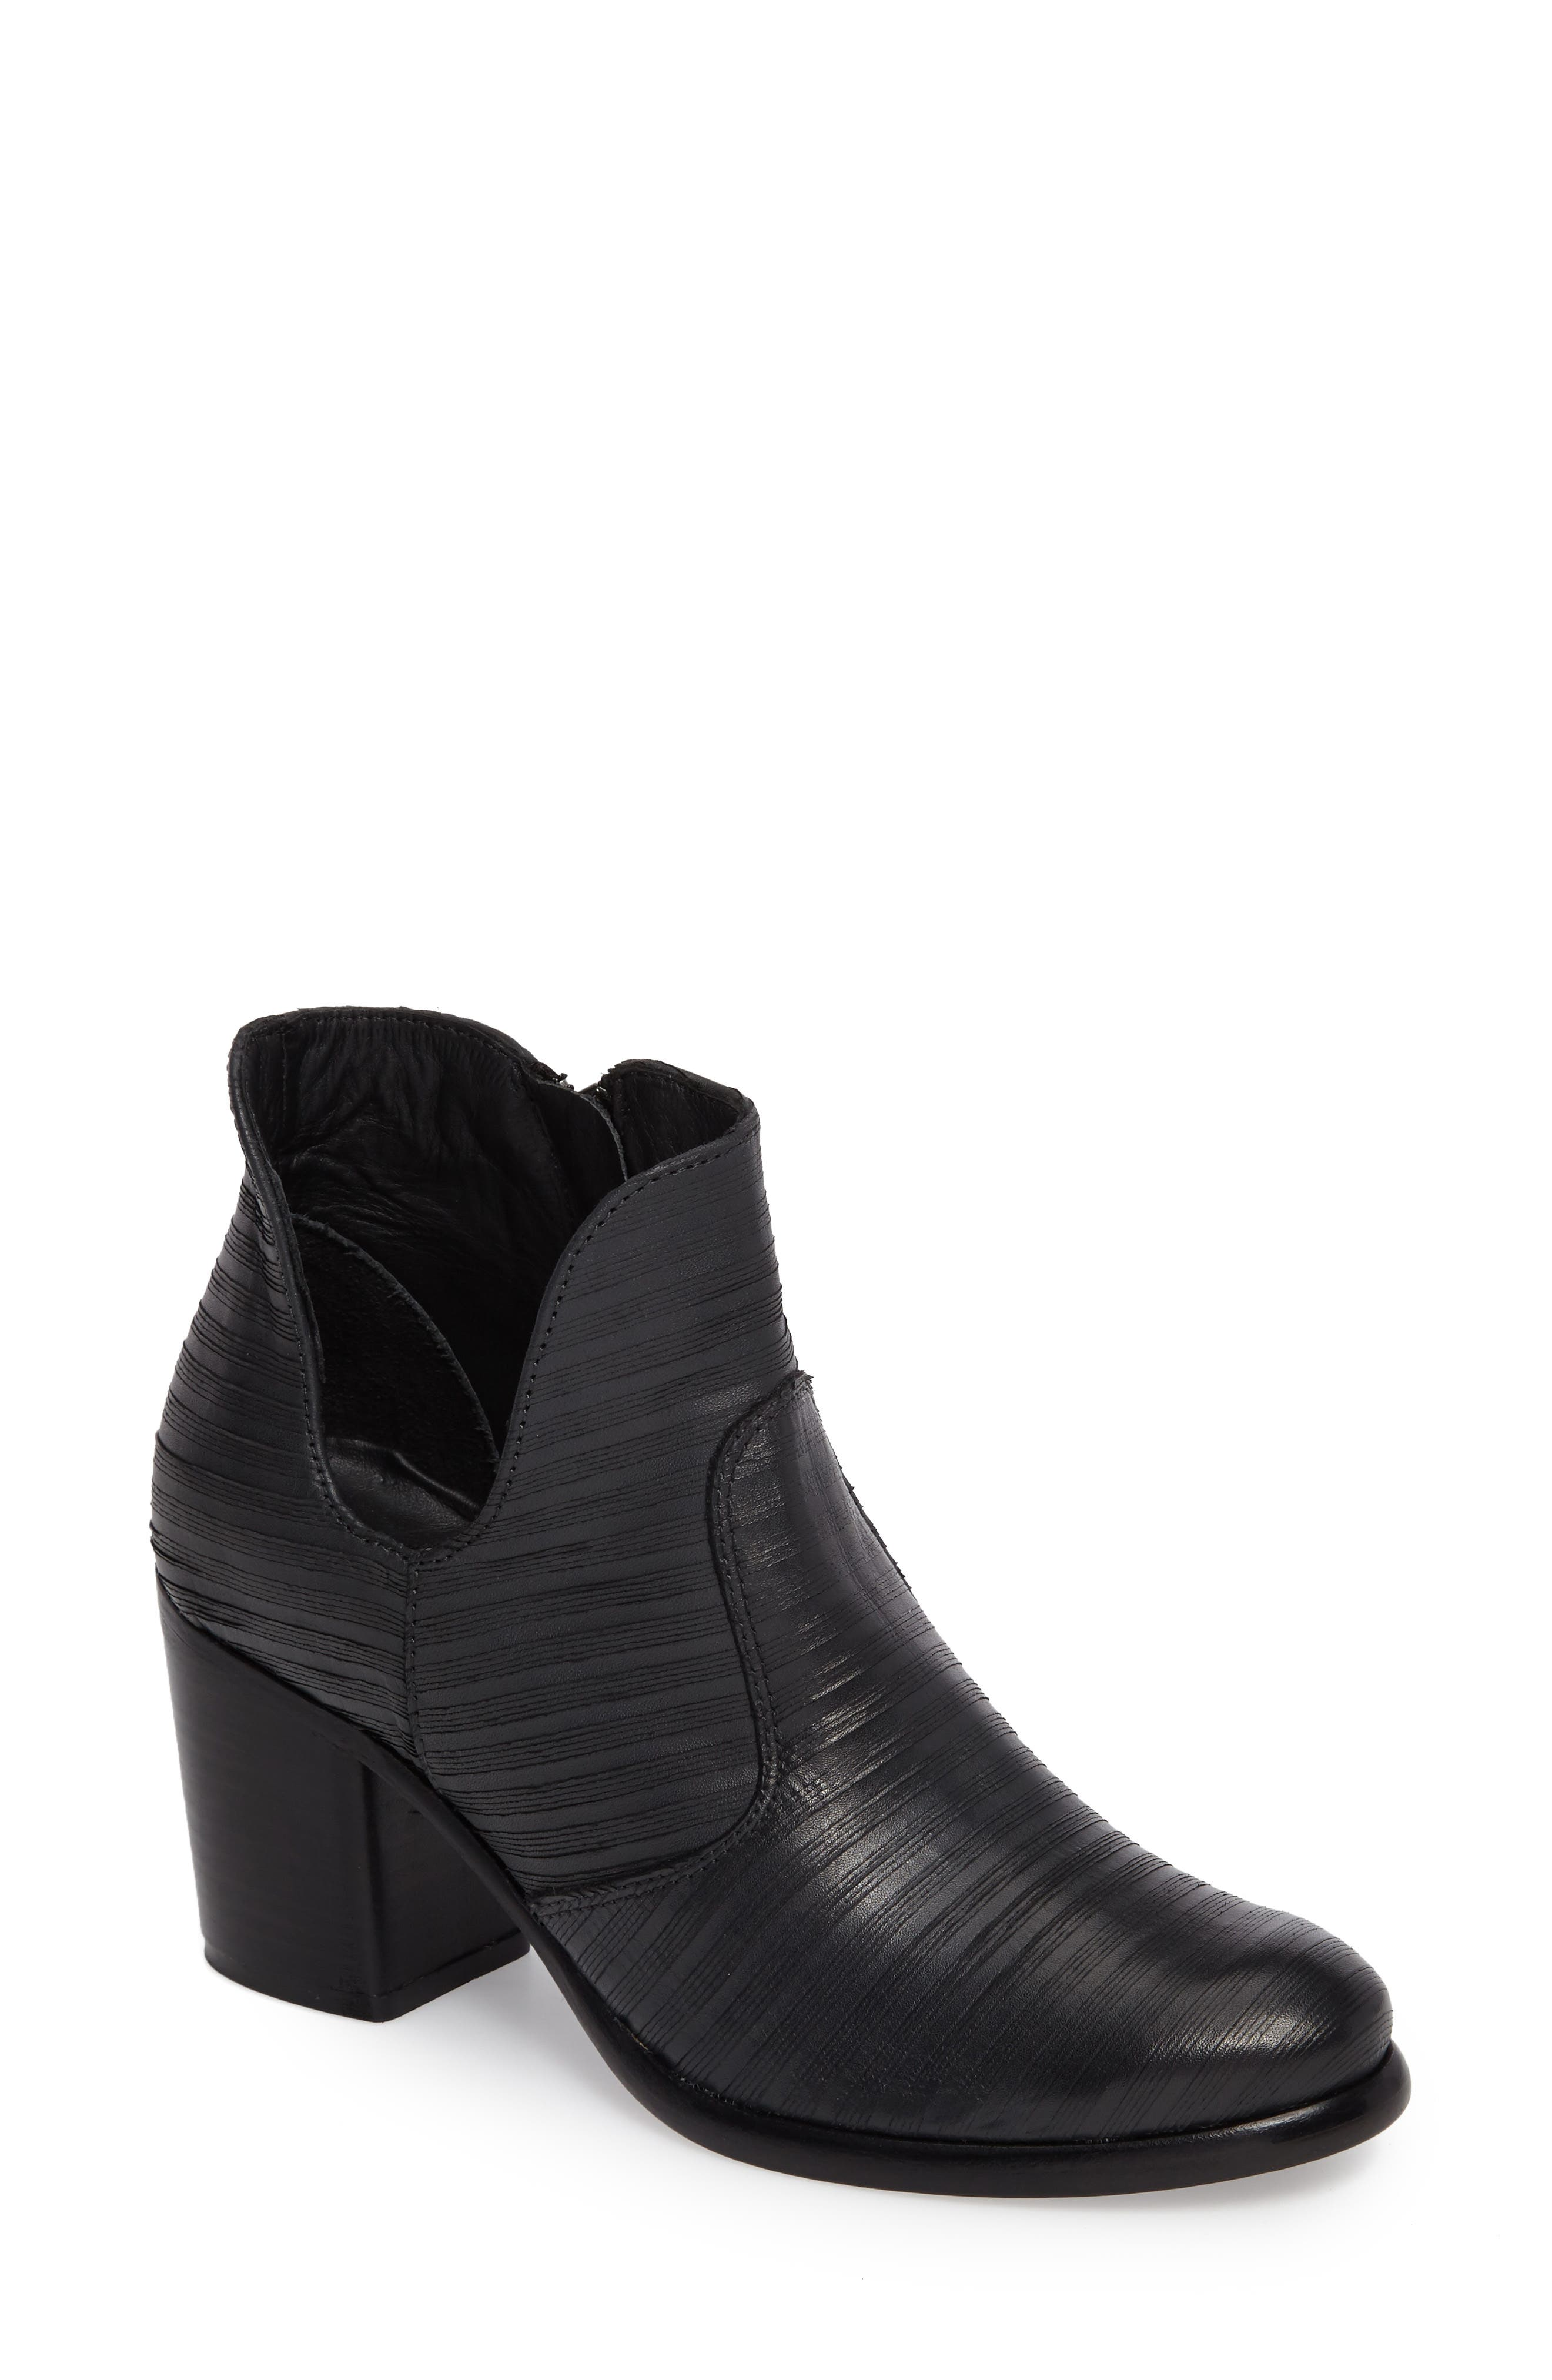 Blurred Lines Bootie,                             Main thumbnail 1, color,                             001